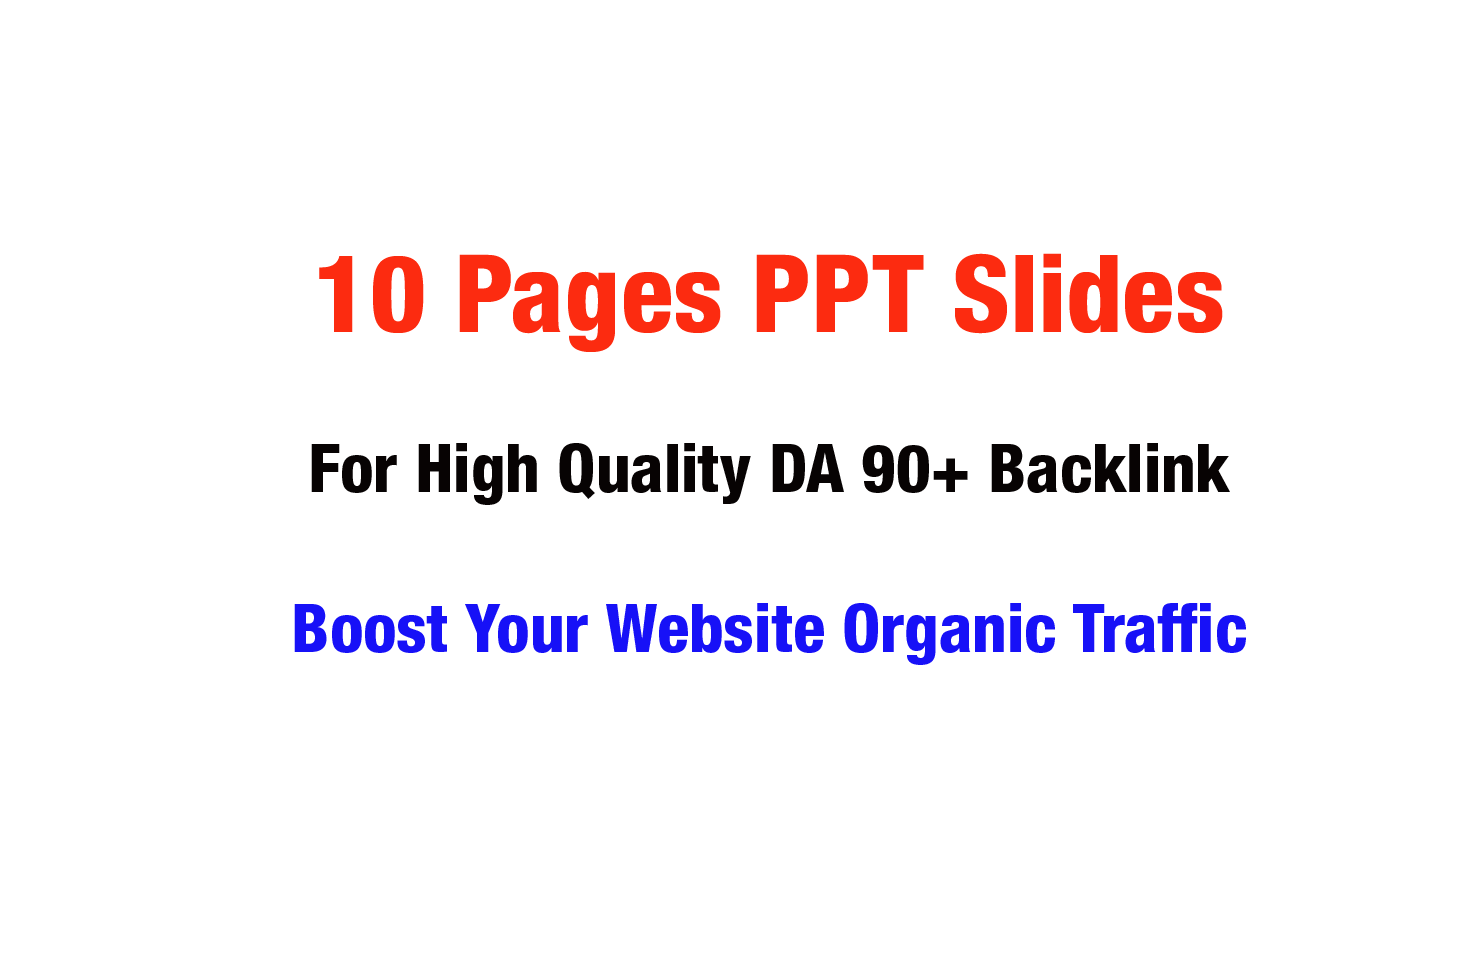 I will Create 10 Pages PPT Slides For SEO DA 90+ Backlinks Boost your Website Organic Traffic